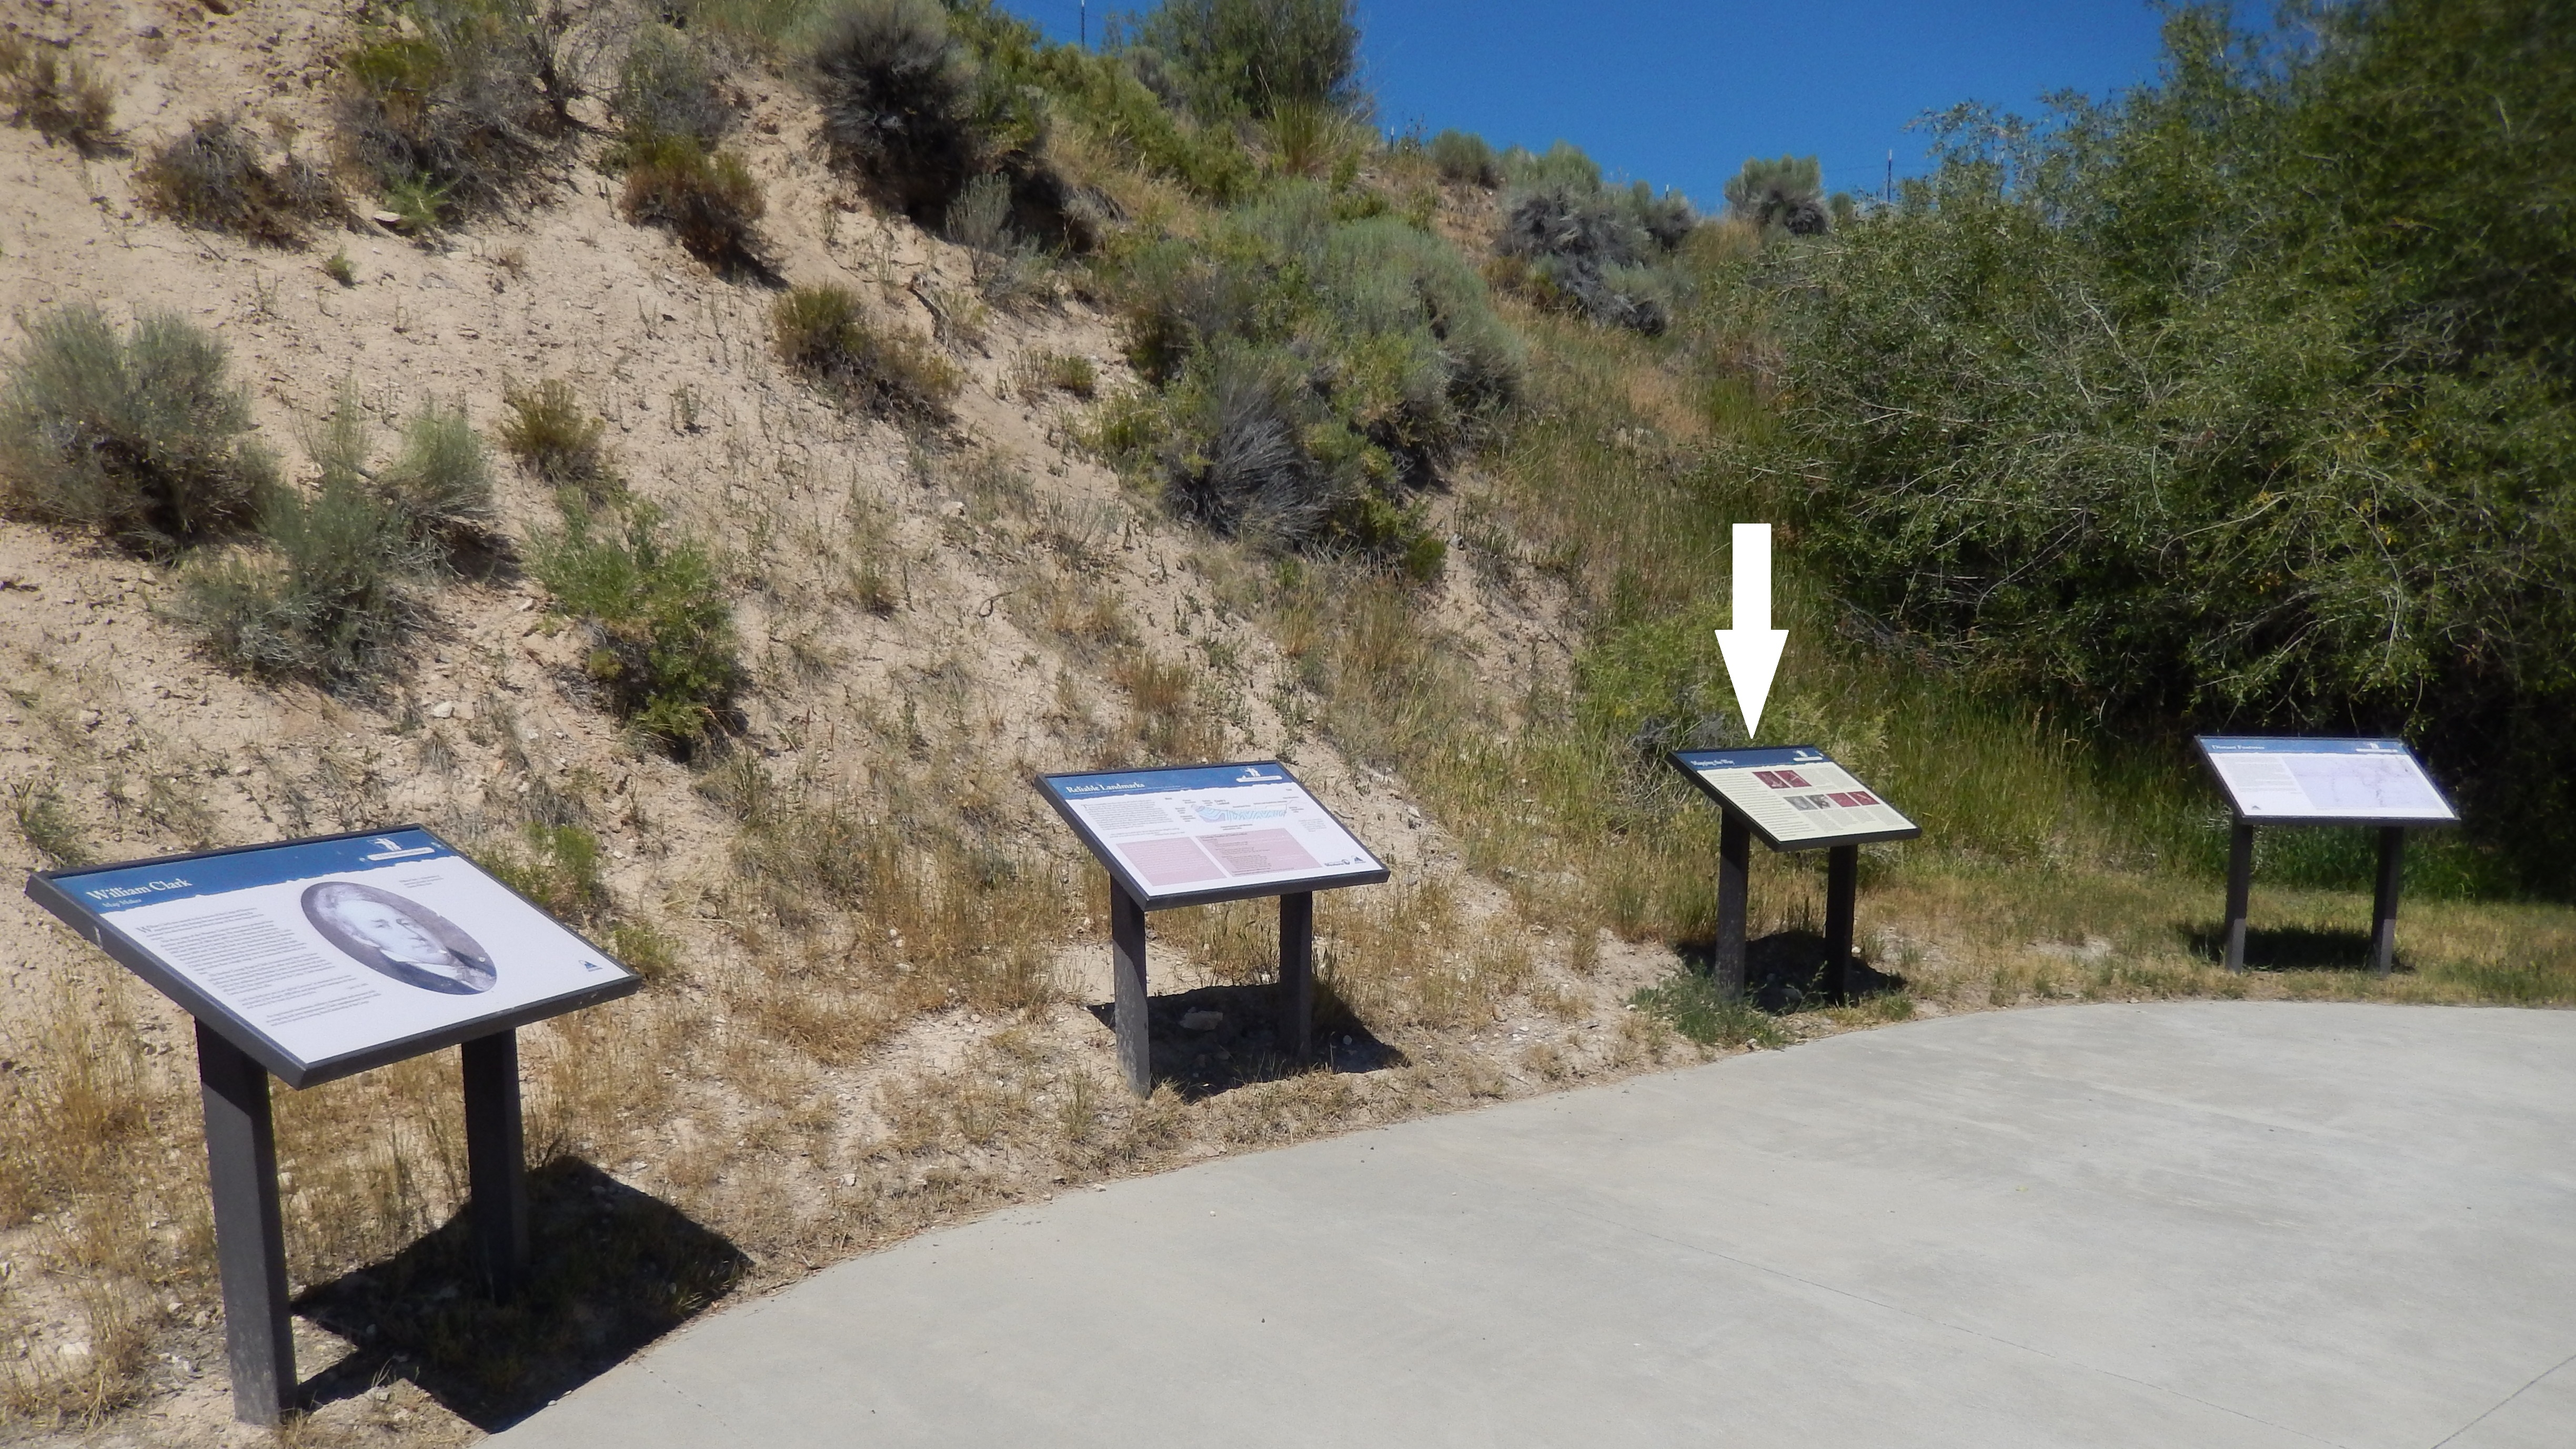 Mapping the Way Marker (<i>wide view showing related markers at trailhead</i>)